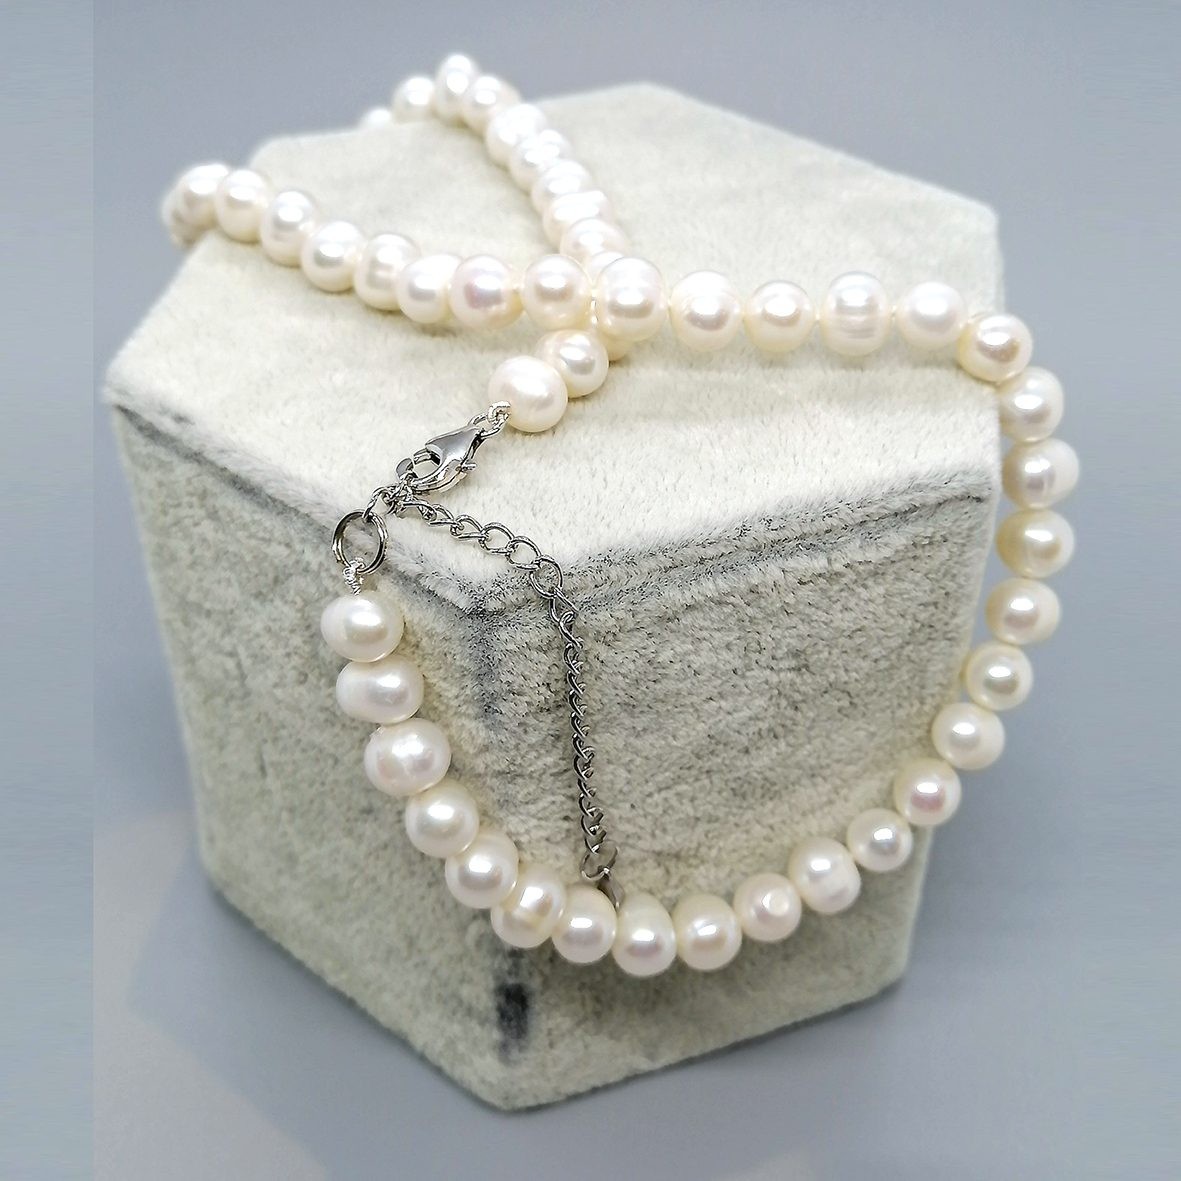 Pearl Necklace 6.5 - 03.jpg